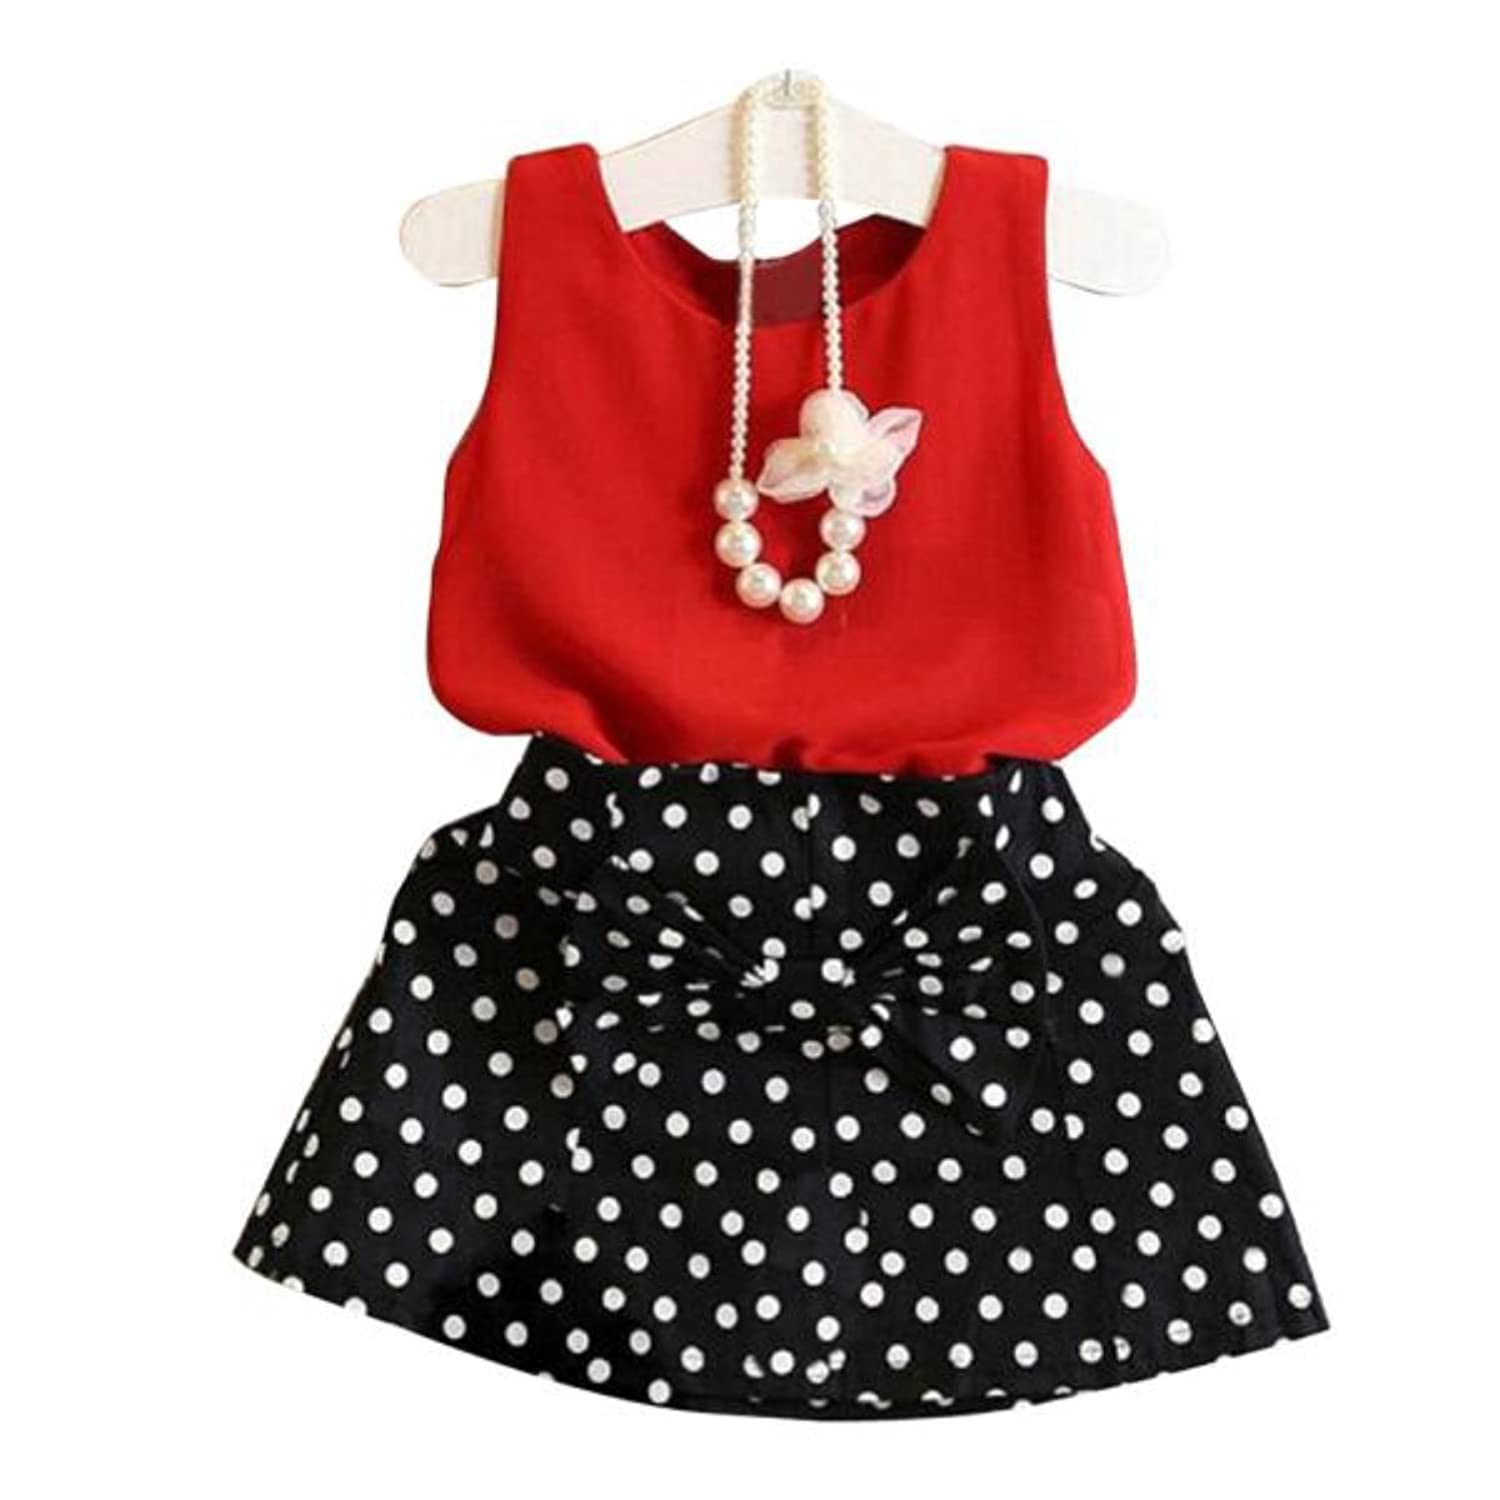 9c14a8339 Red Sleeveless Top with Black Polka Dots Short Skirt Having Bow for Girls (1 -